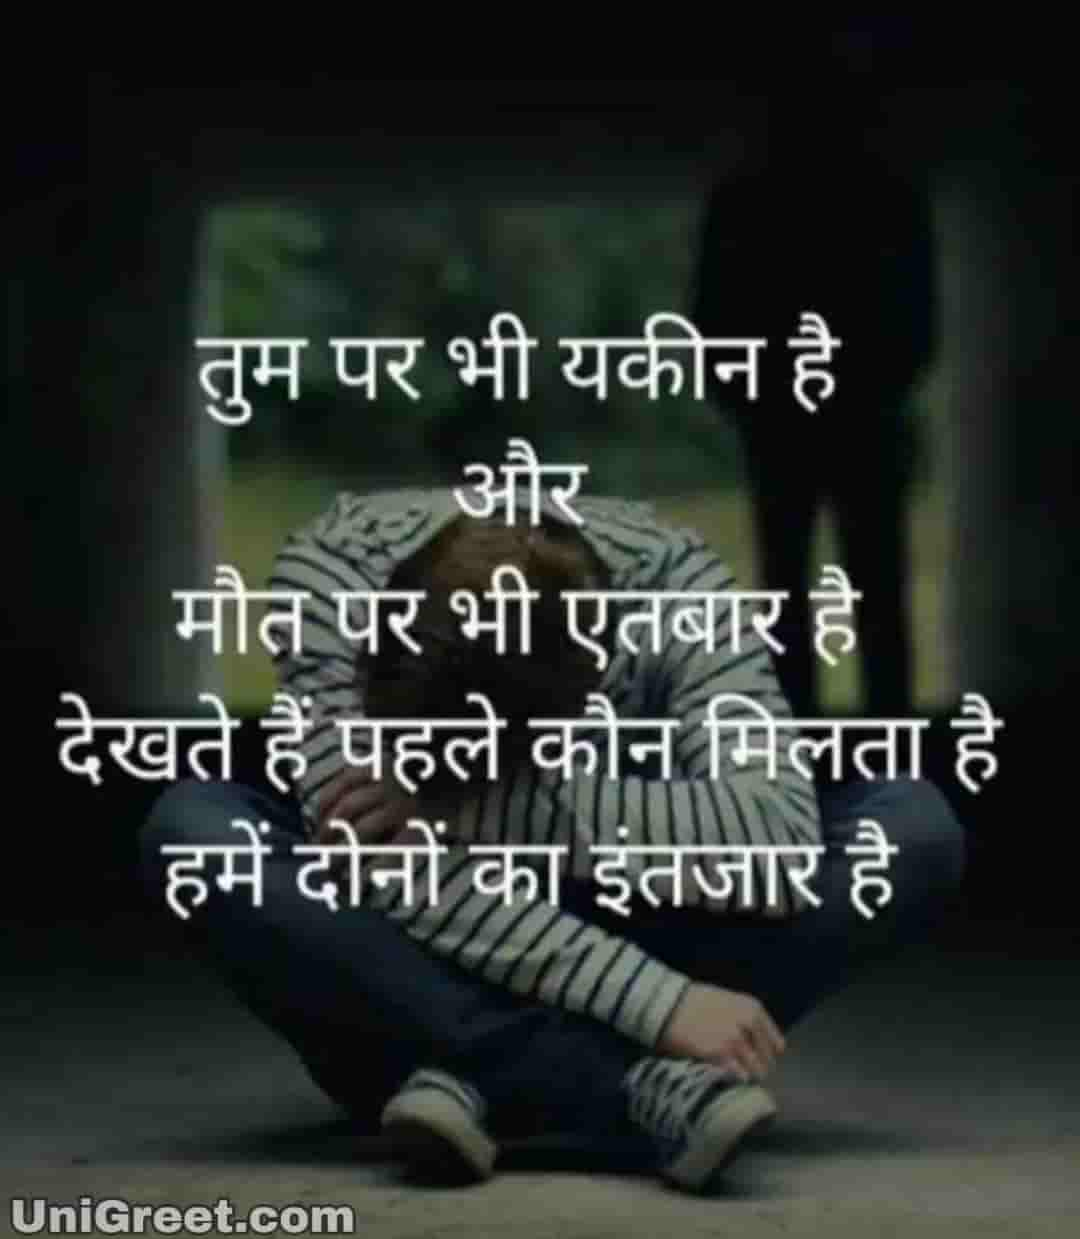 ( मौत ) Hindi Death Dp Images Died Quotes Status Shayari Pics In Hindi